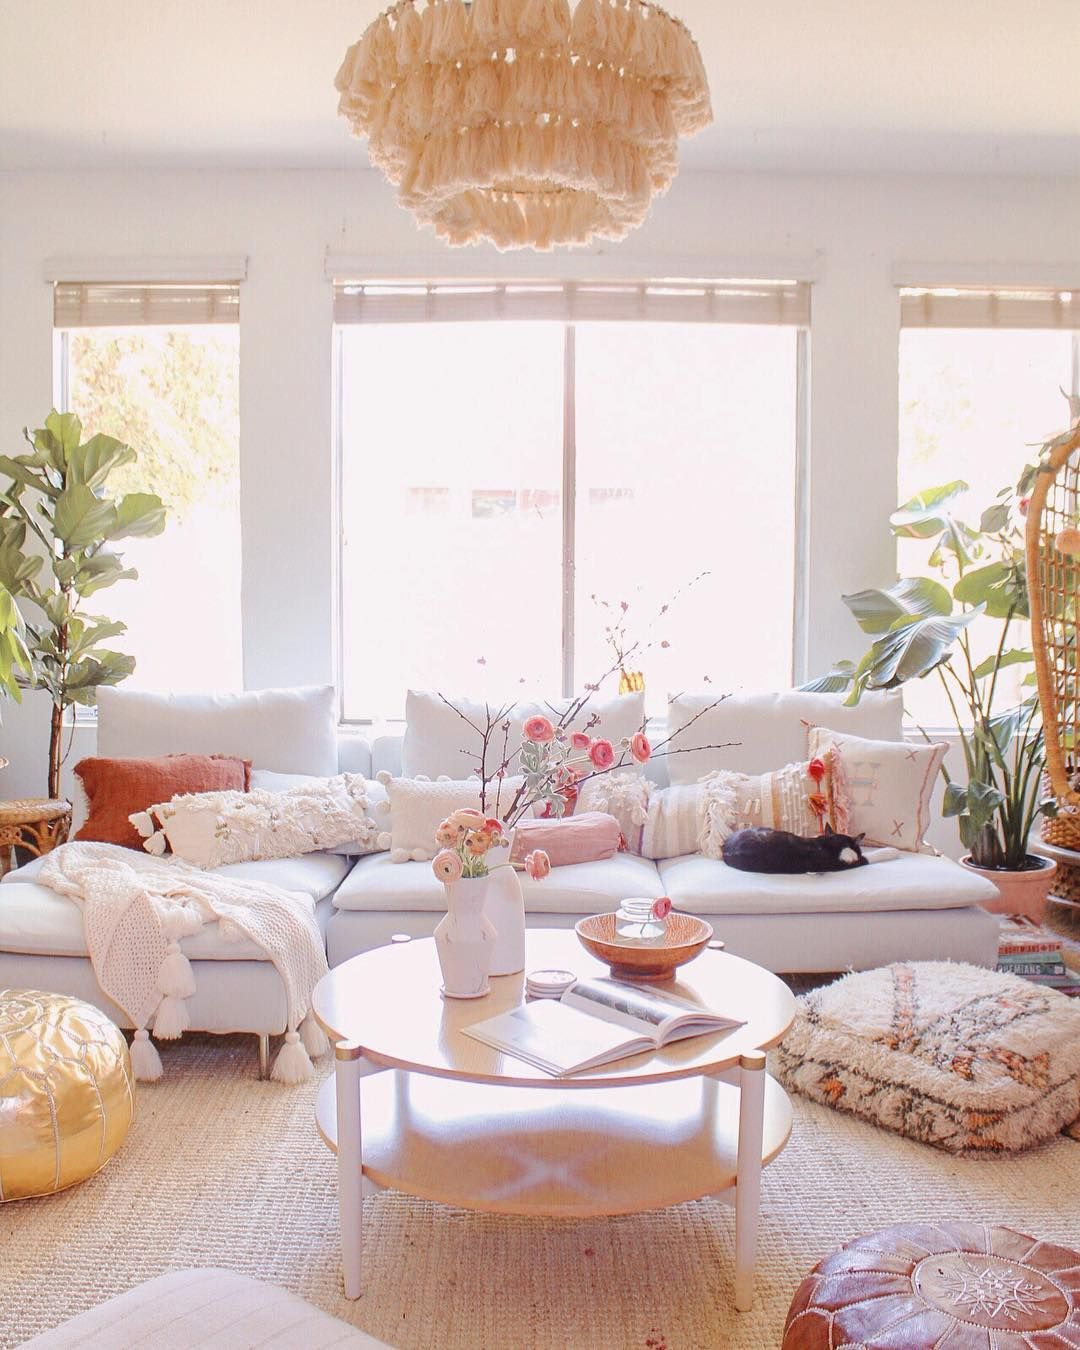 Soft Neutral Decor With Great Boho Texture Plants And Pops Of Pink #neutral #boho #living #room